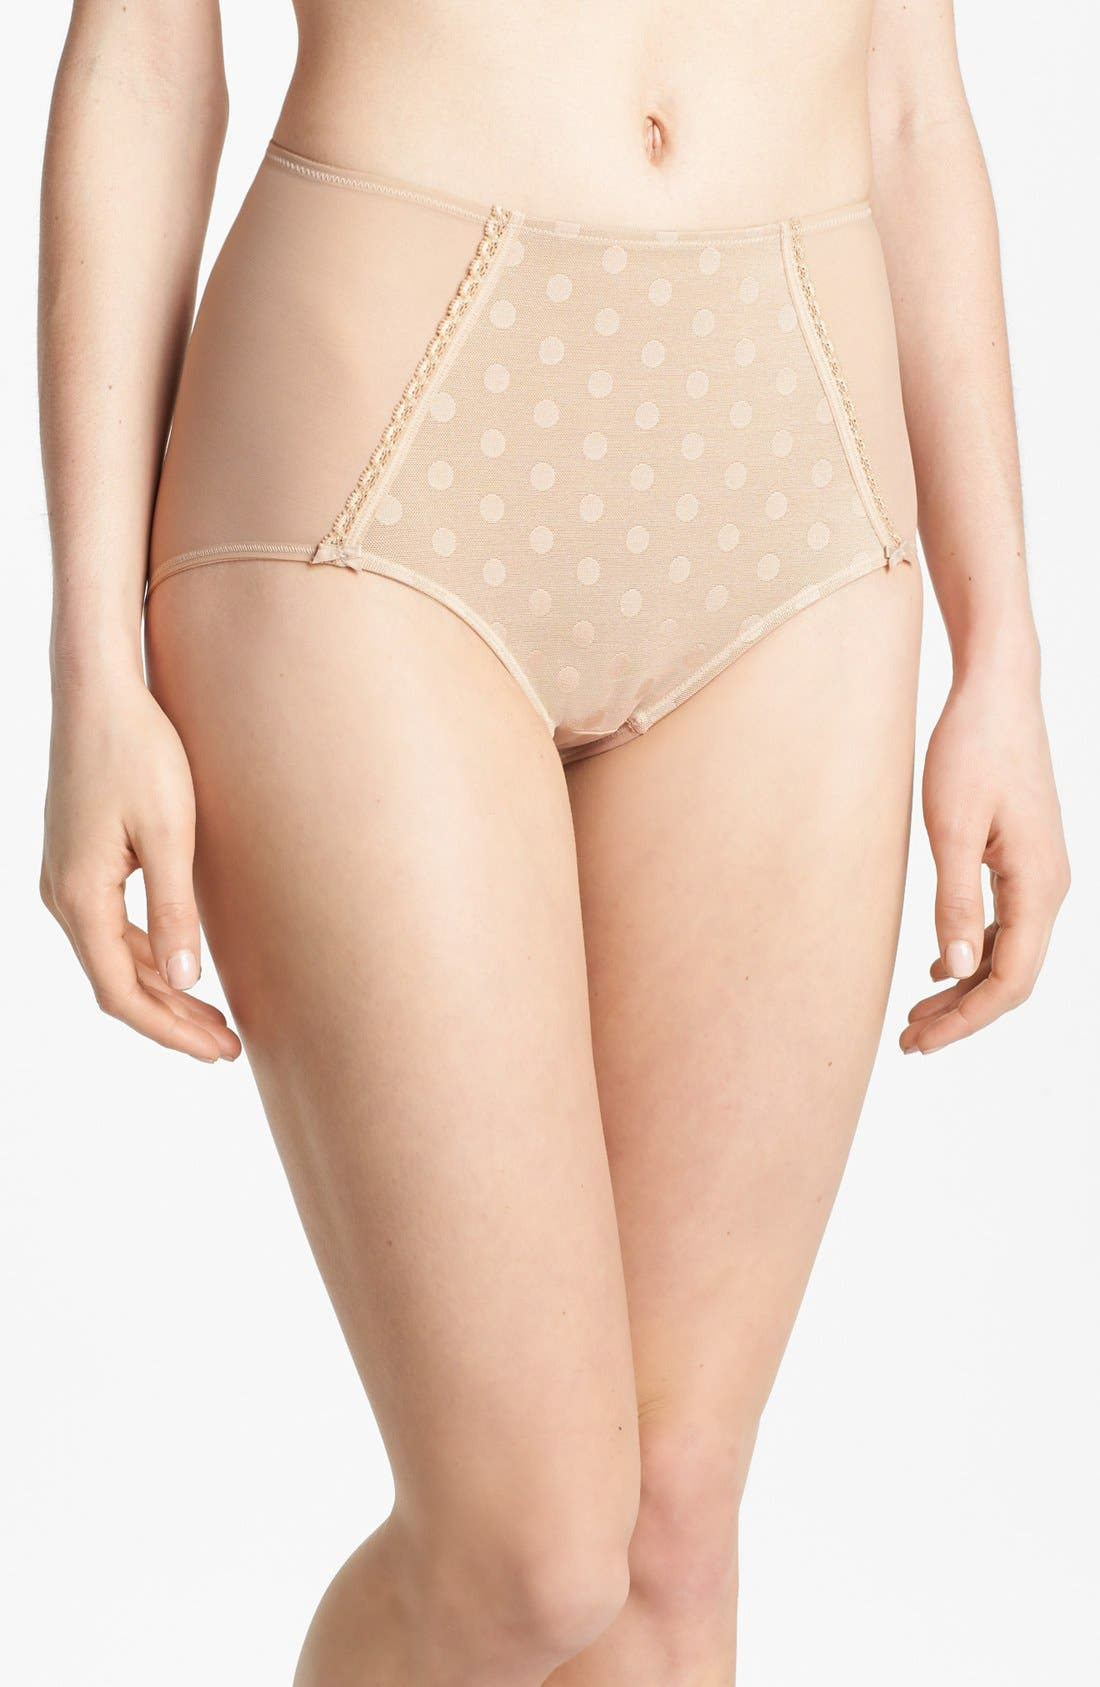 Main Image - DKNY 'Underslimmers Cute Girl' Slimming Briefs (Shaper) (Online Only) (2 for $36)